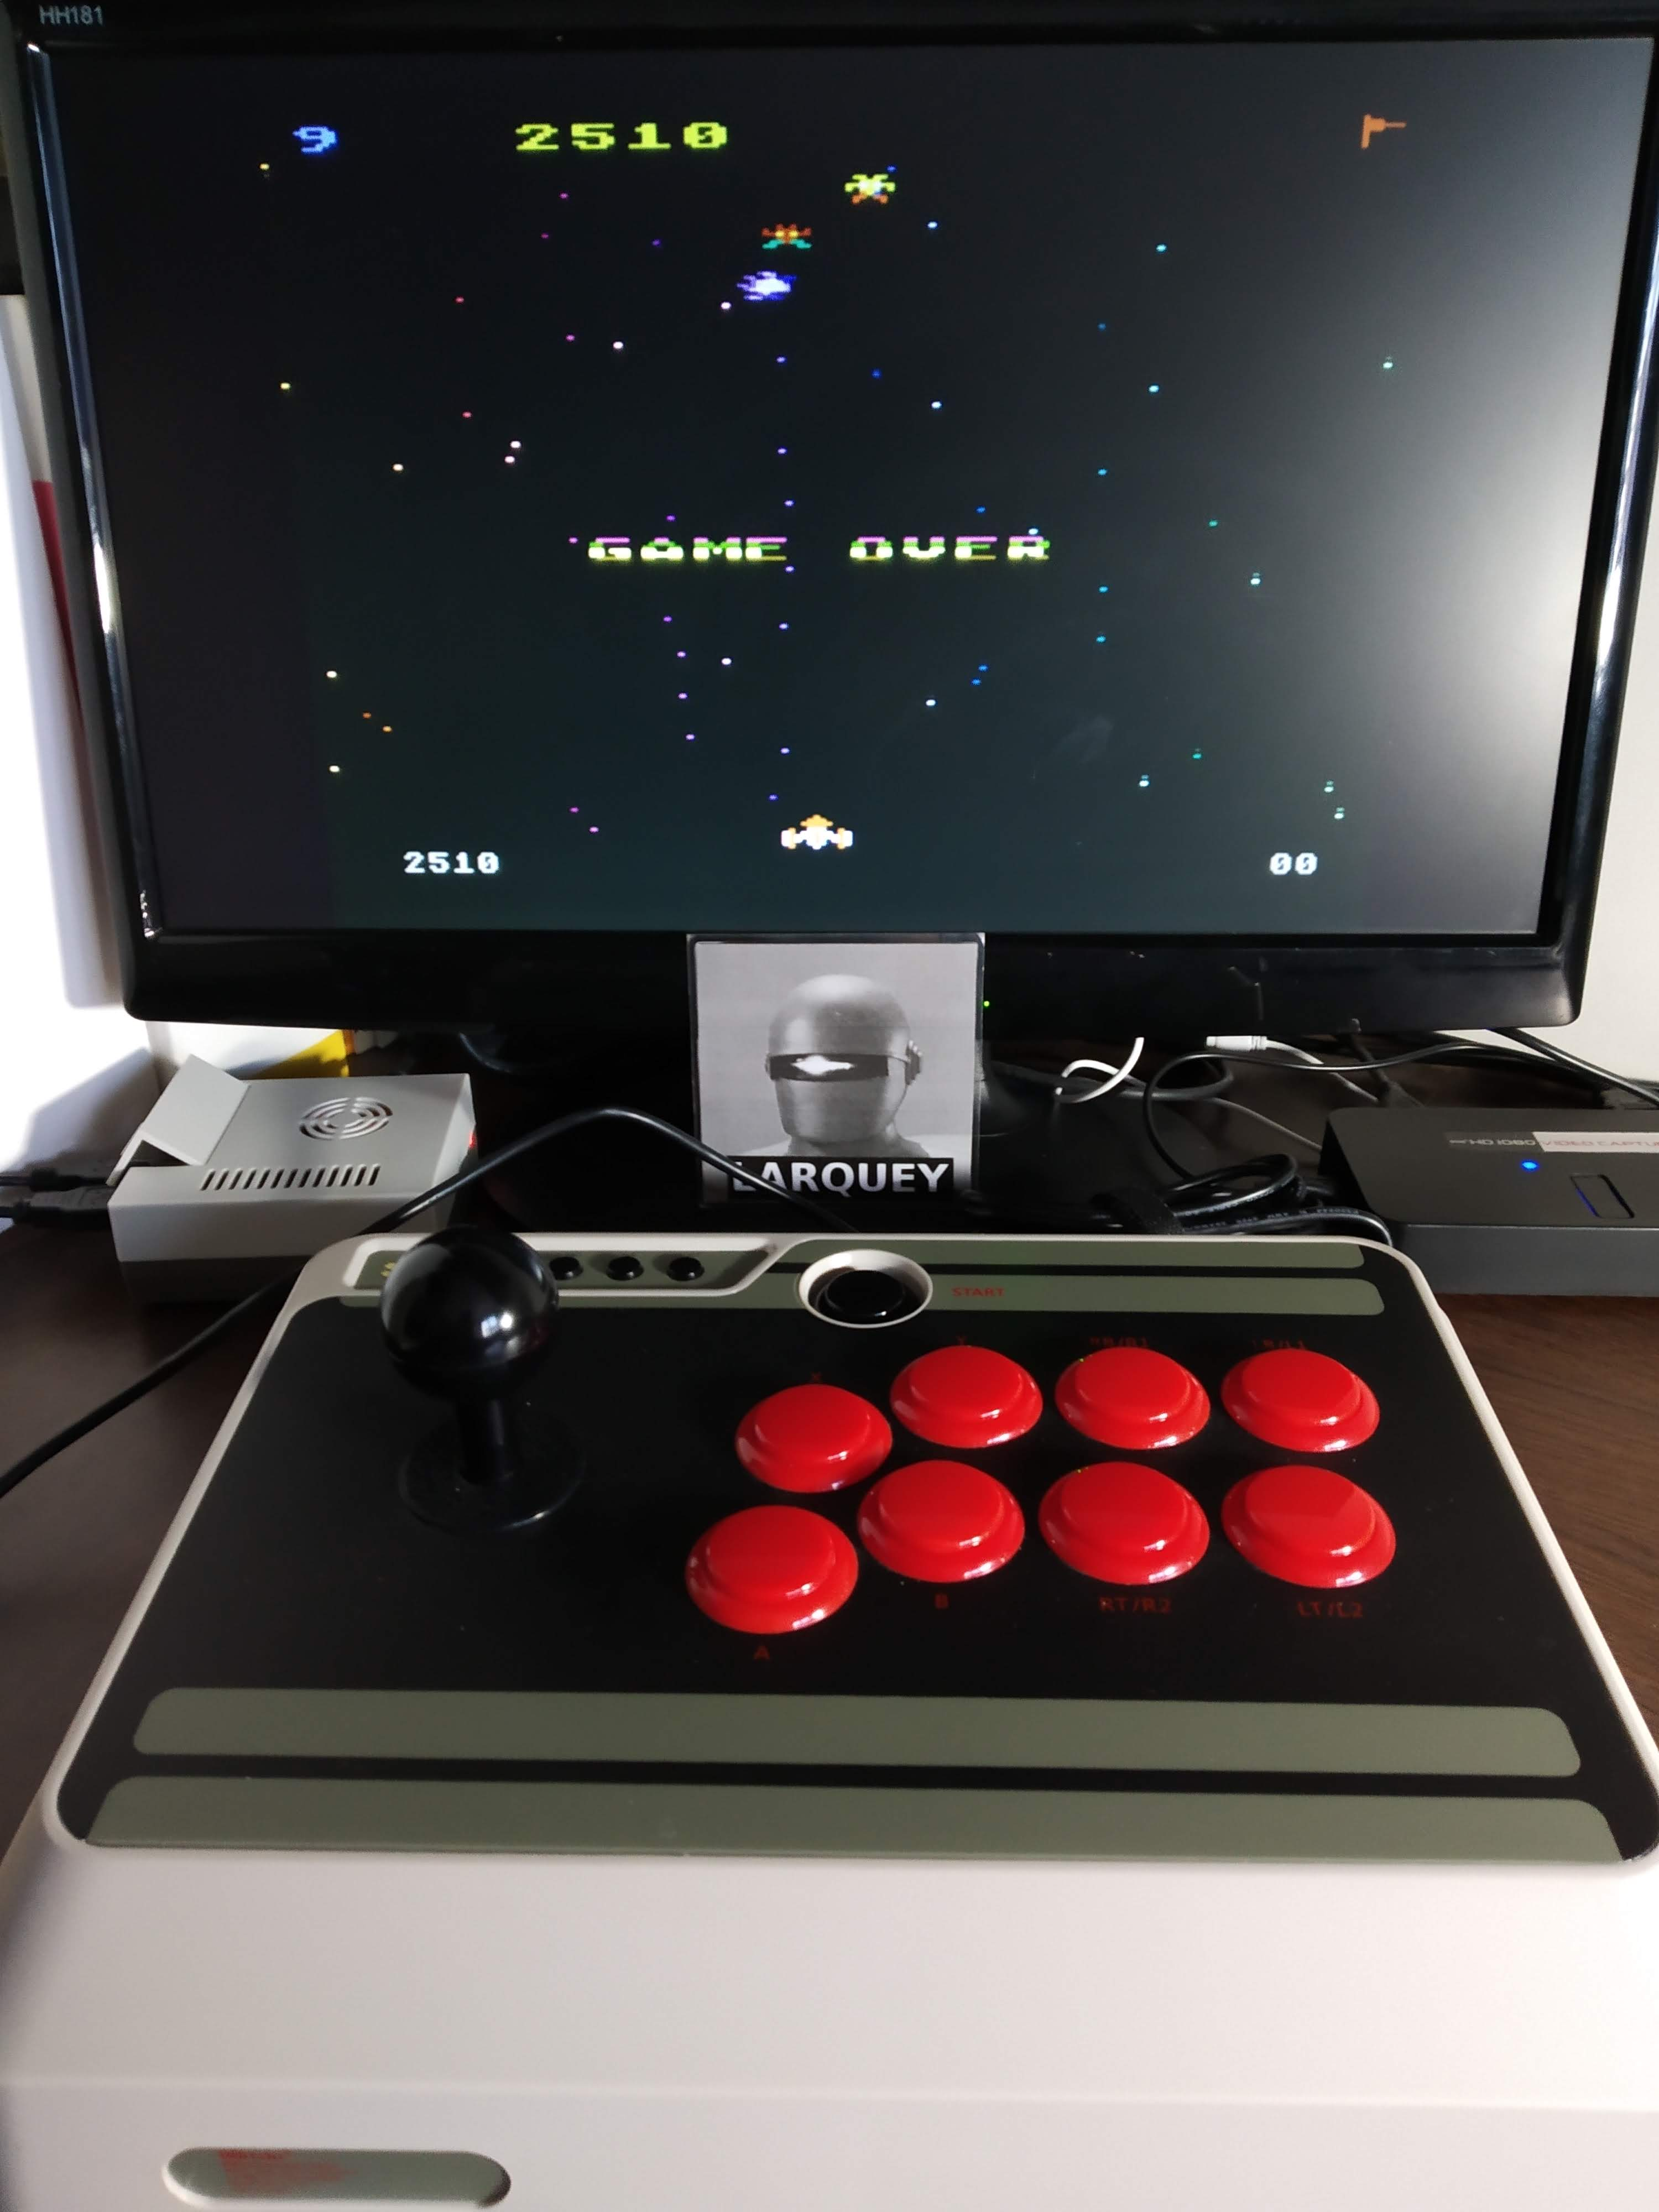 Galaxian: Skill Level 9 2,510 points